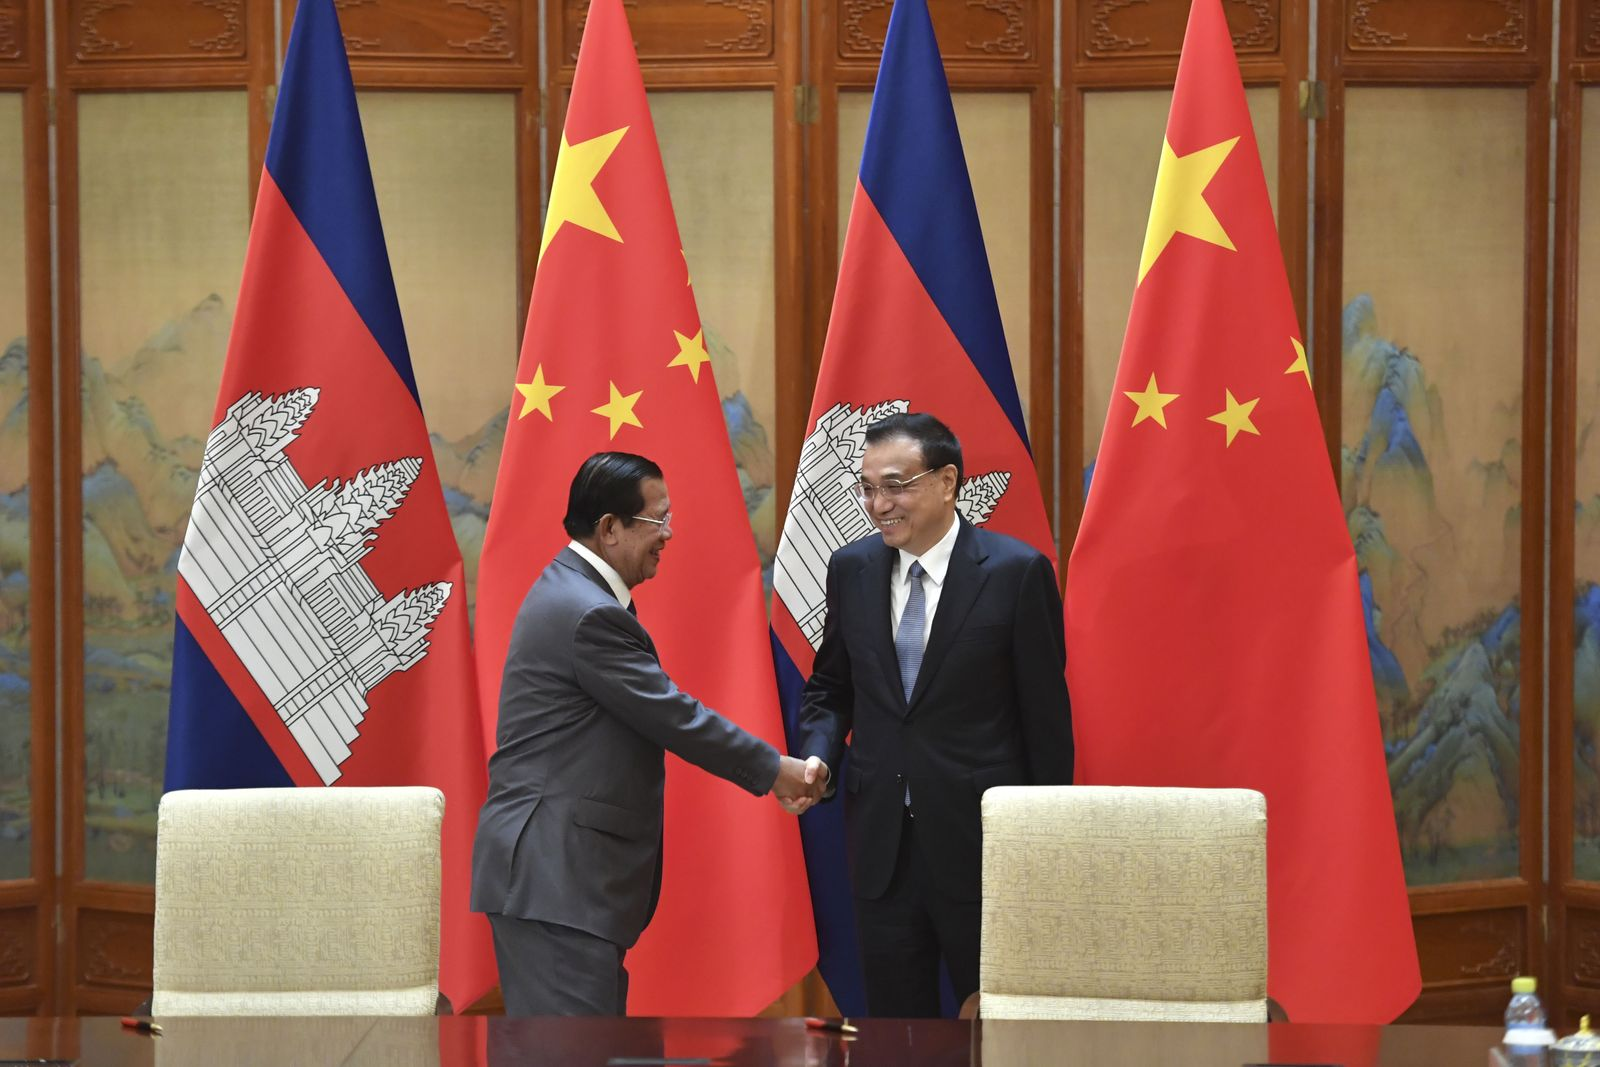 Prime Minister of Cambodia Meets With Premier of China in Beijing